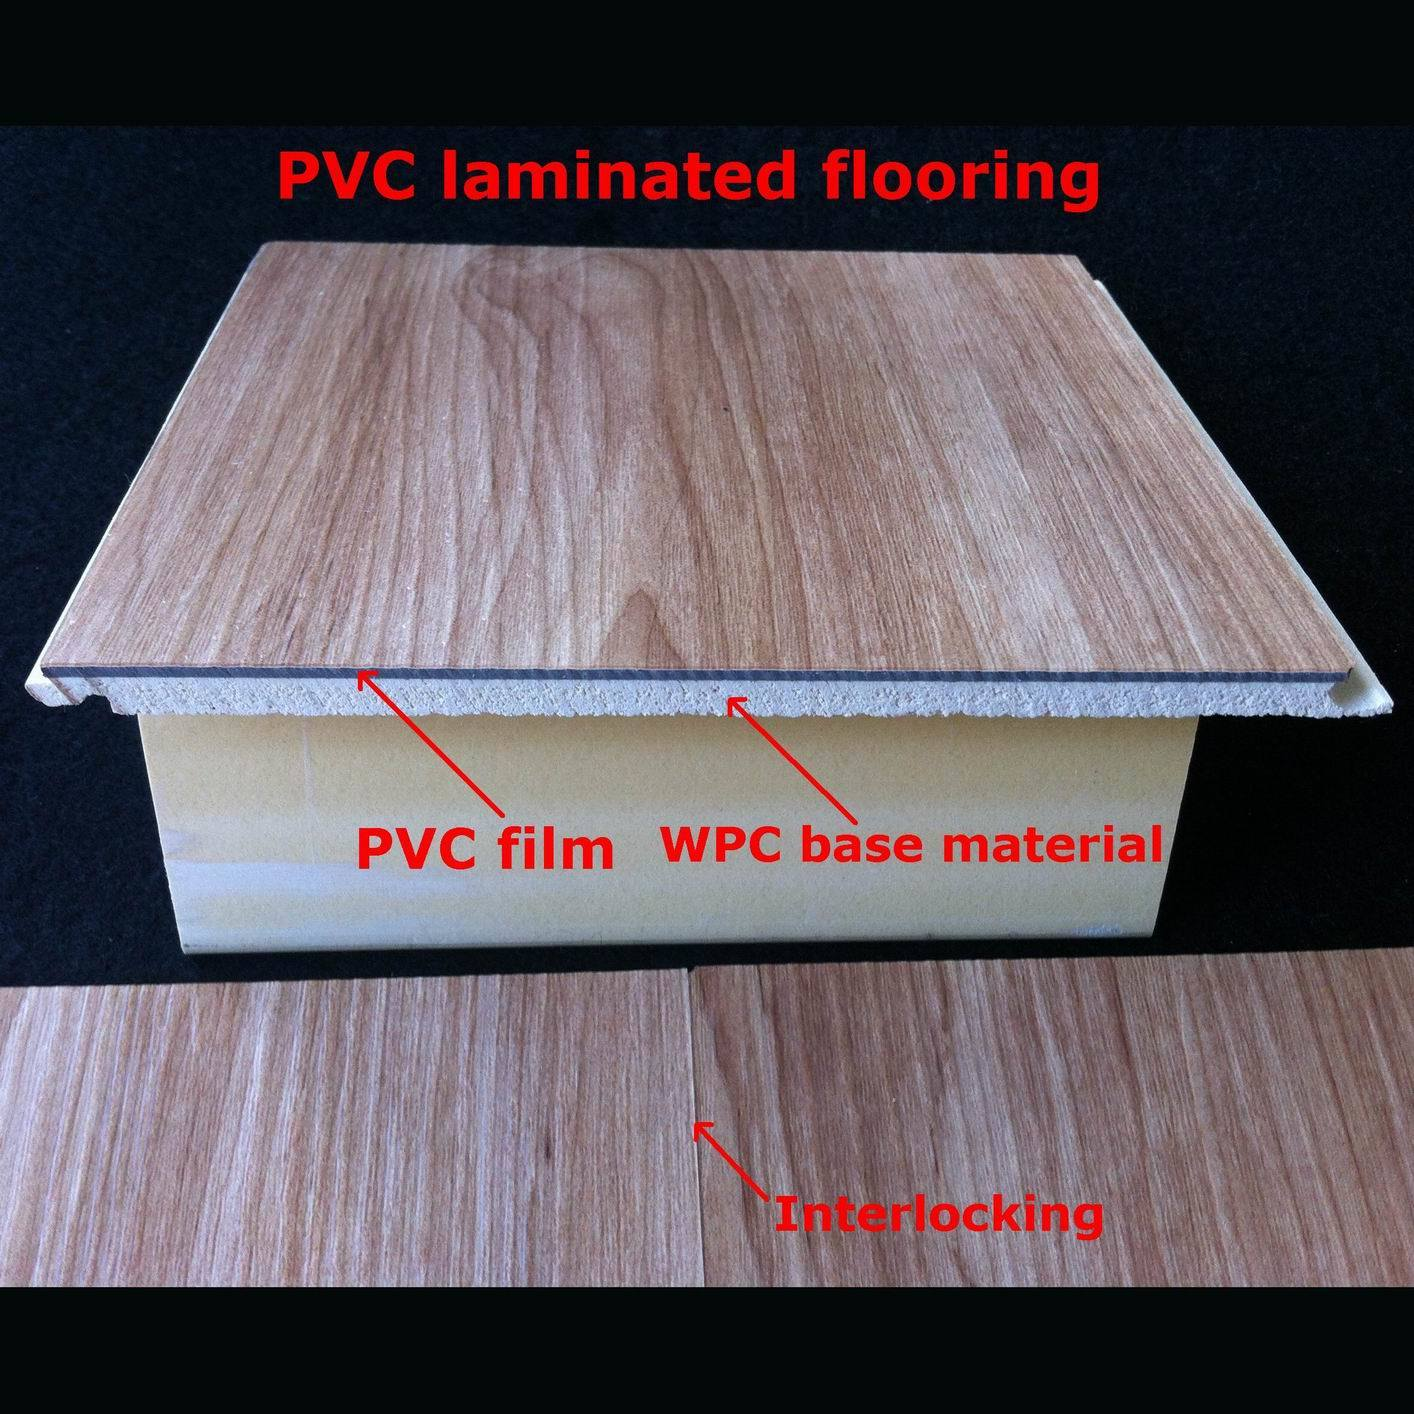 Waterproof Laminate Flooring u bevel dark cherry waterproof laminate flooring glueless with quick lock 7mm Popular Wpc Laminate Flooring Pvc Laminated Flooring Decorative Flooring Waterproof Durable